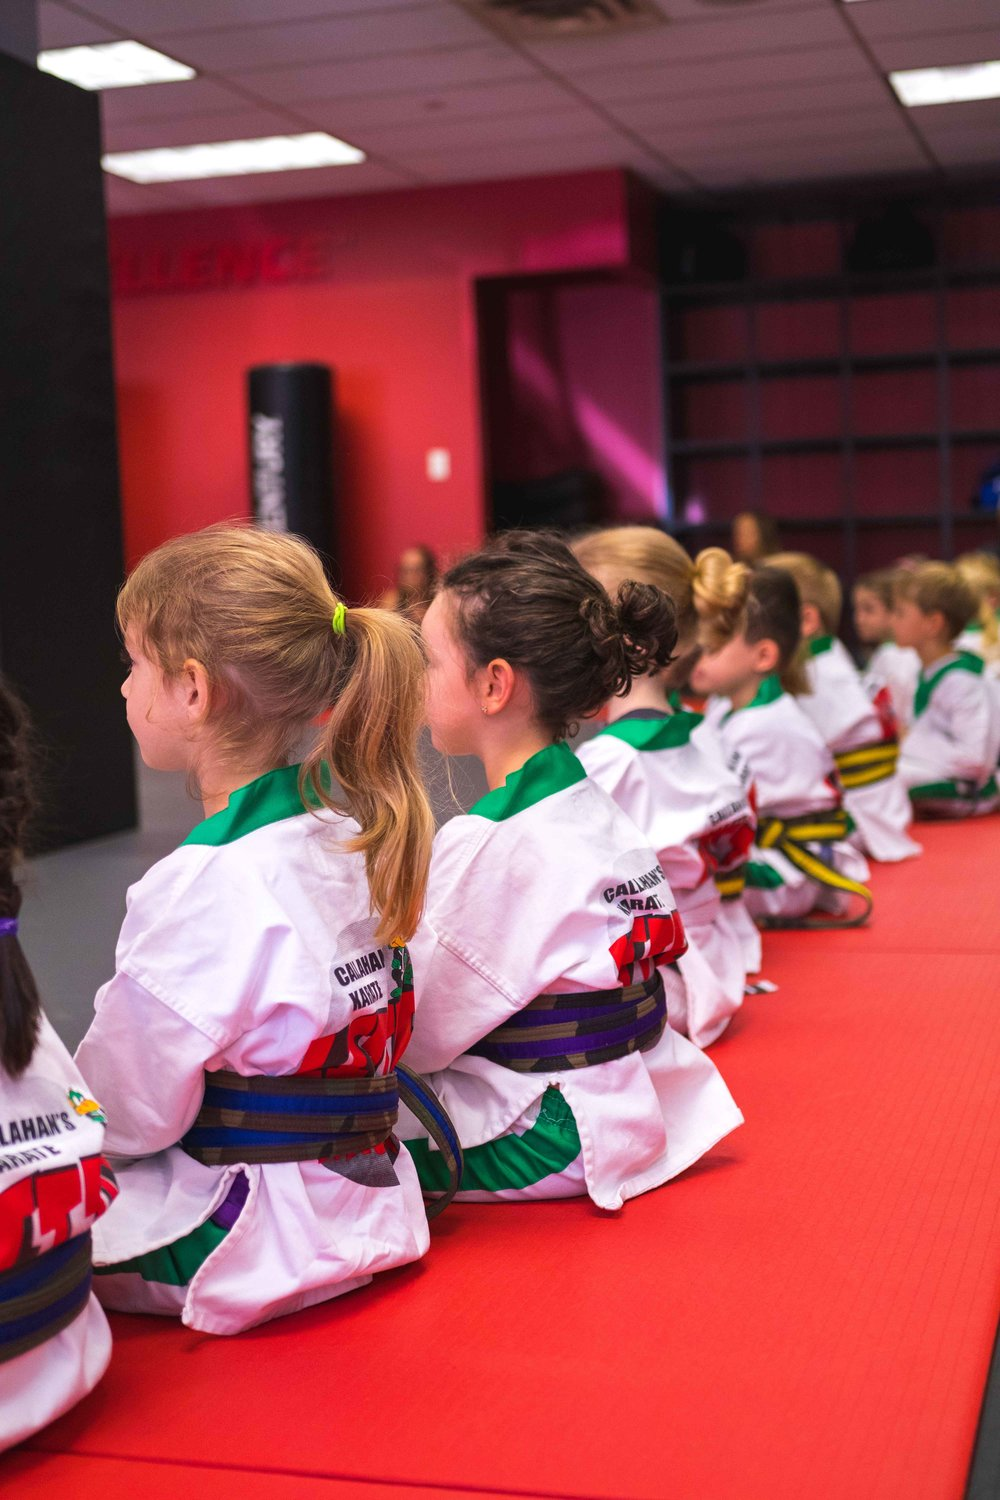 Martial Arts Classes for Children Bedford MA Callahans Karate A Family Martial Arts Studio.jpg